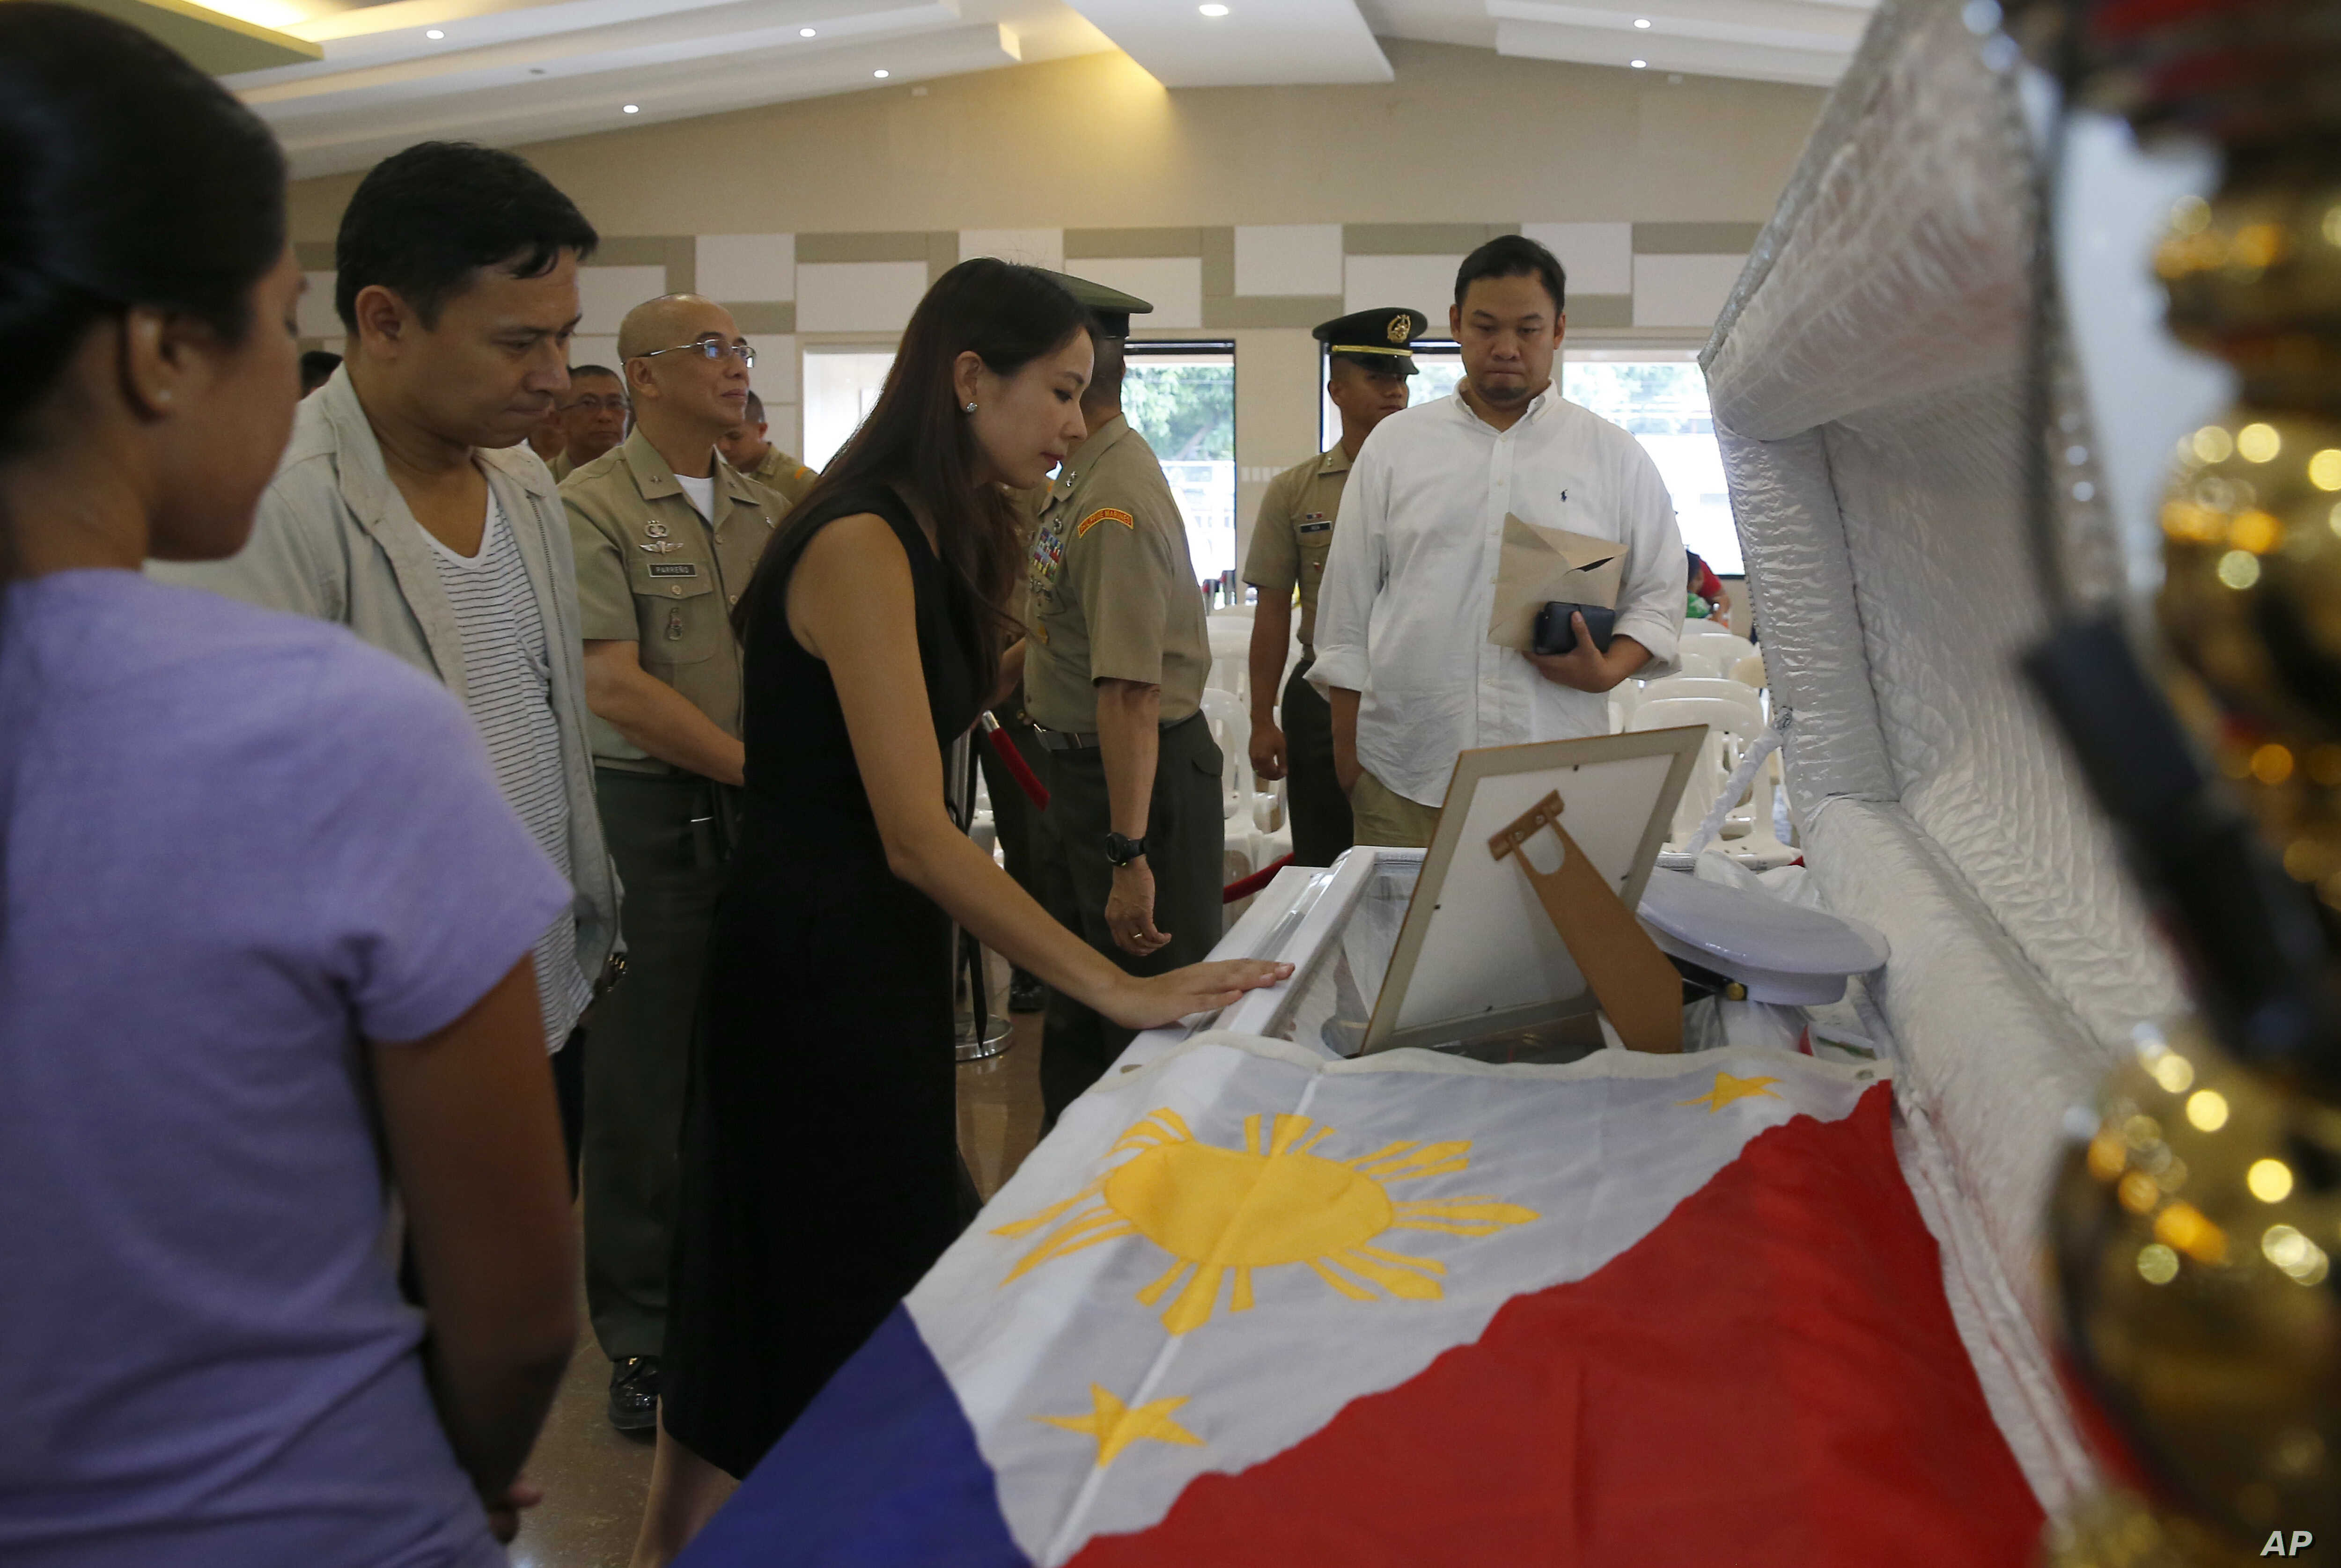 Philippine Senator Sonny Angara, second from left, and his wife, Elvira, pay their respects to Philippine Marine Pfc. Marvin Gomez, killed in the fighting with Muslim militants in Marawi City in southern Philippines, June 13, 2017 in Taguig city, eas...